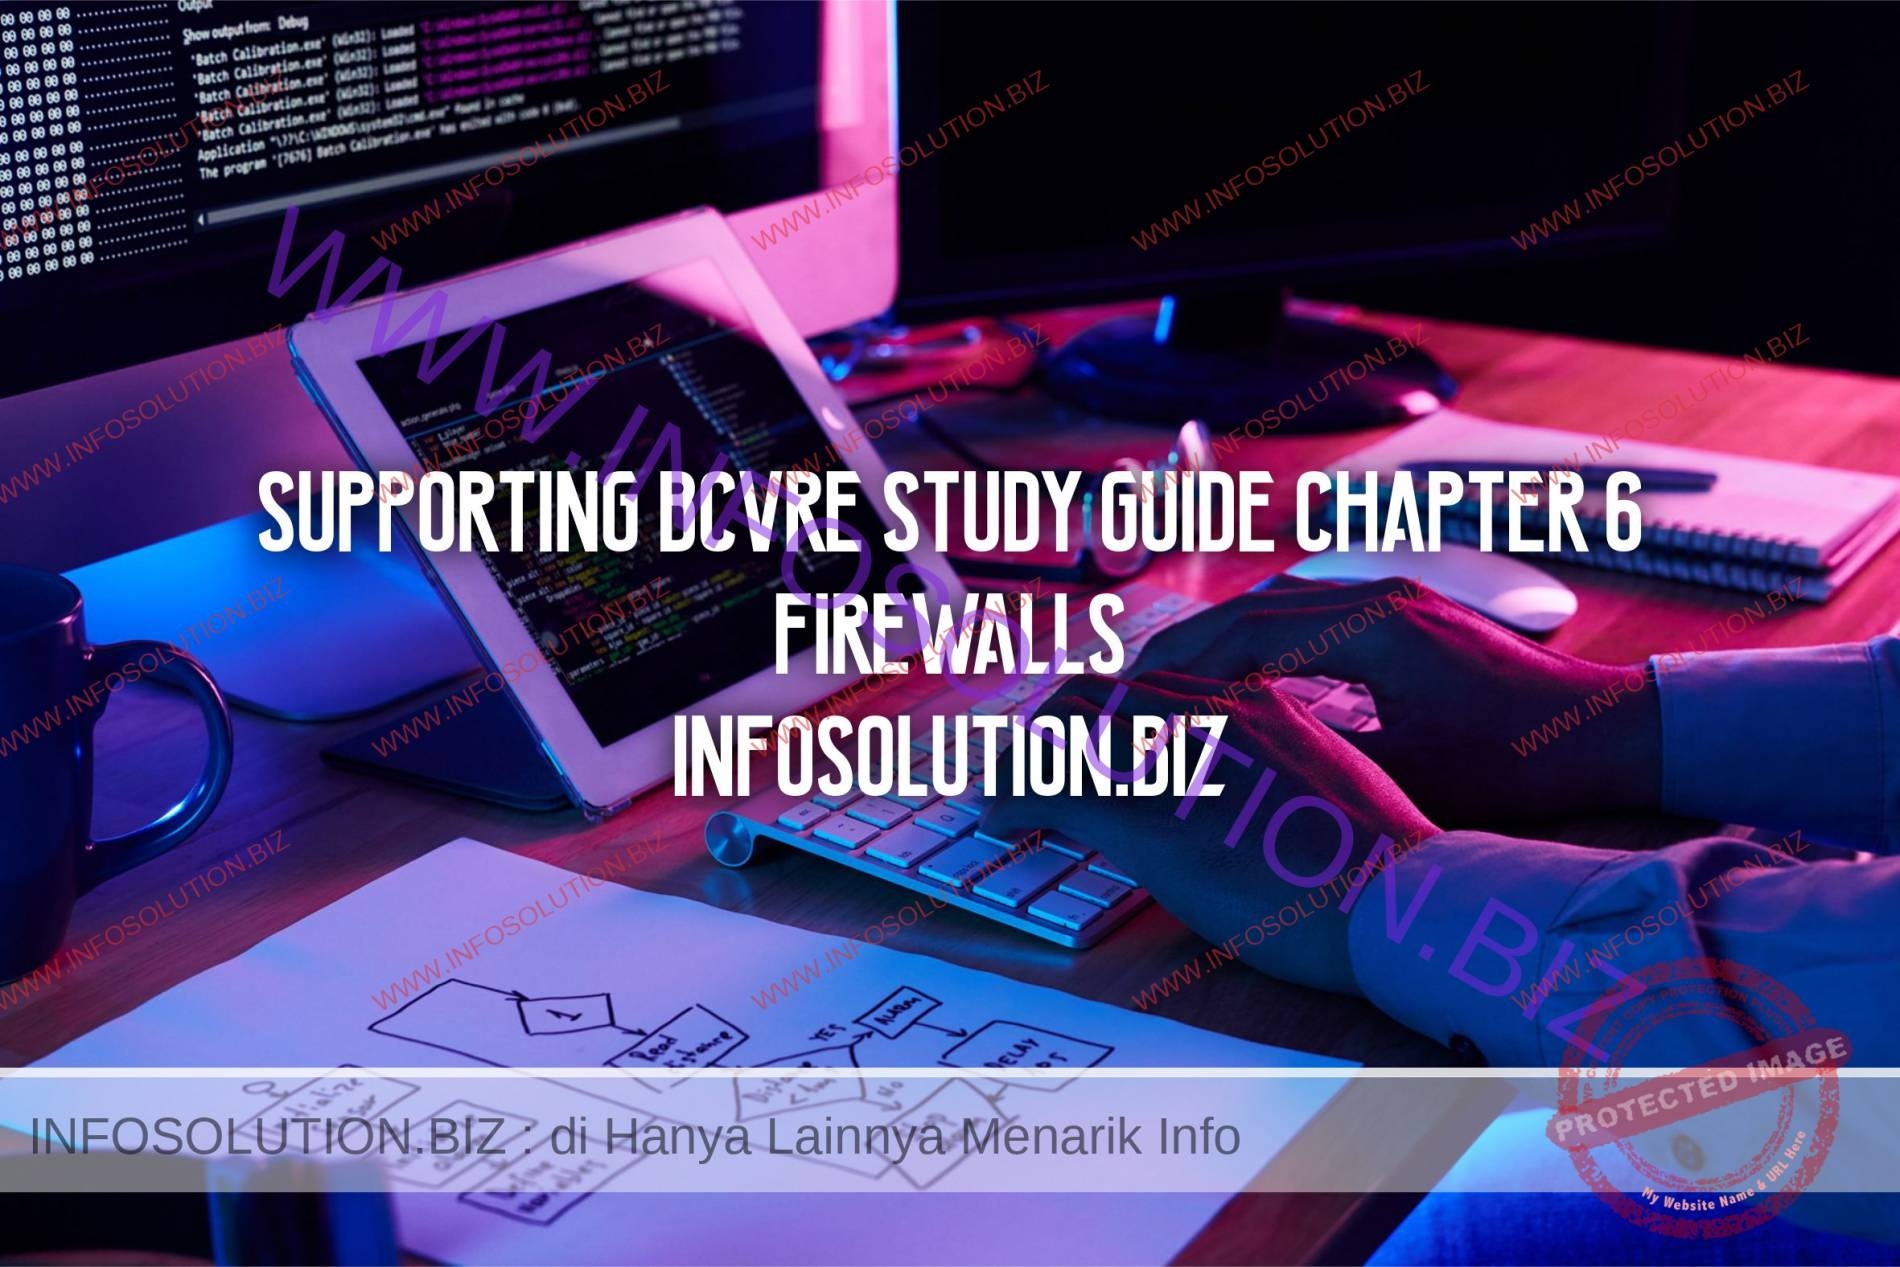 Supporting BCVRE Study Guide Chapter 6 Firewalls